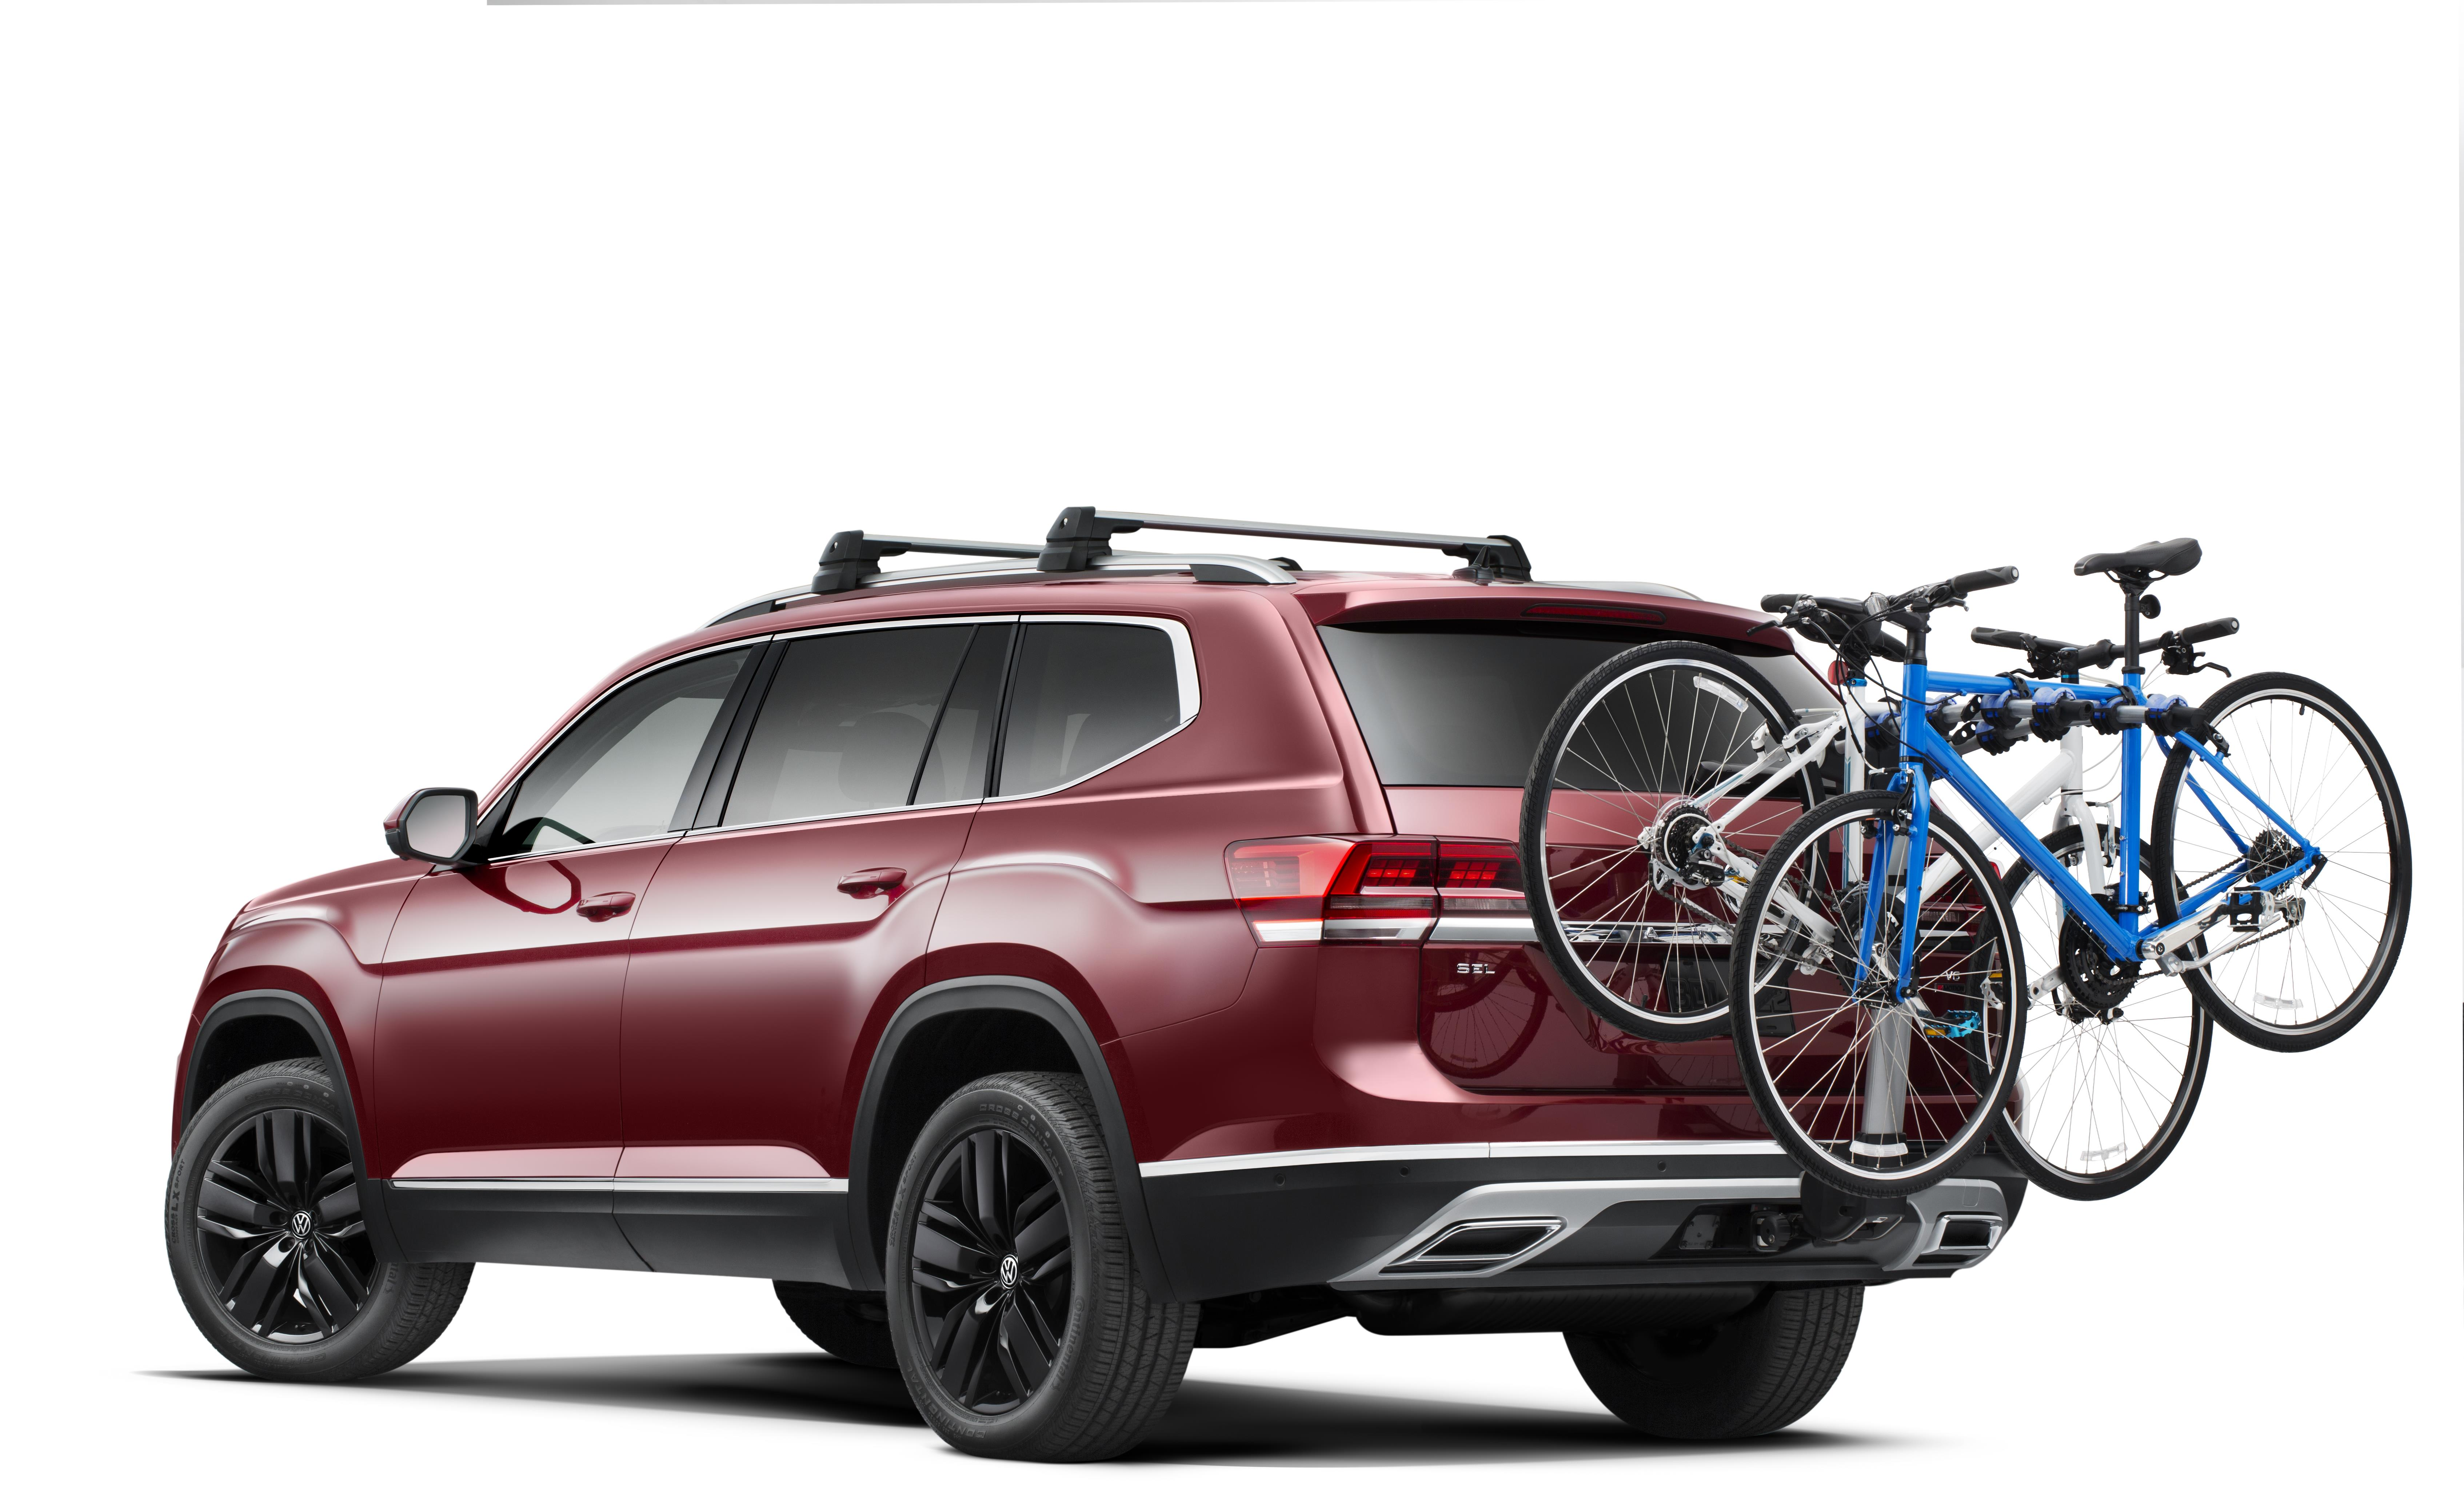 motion vw isi rack and transporter advanced customers bike bicycle df systems trakka carrier